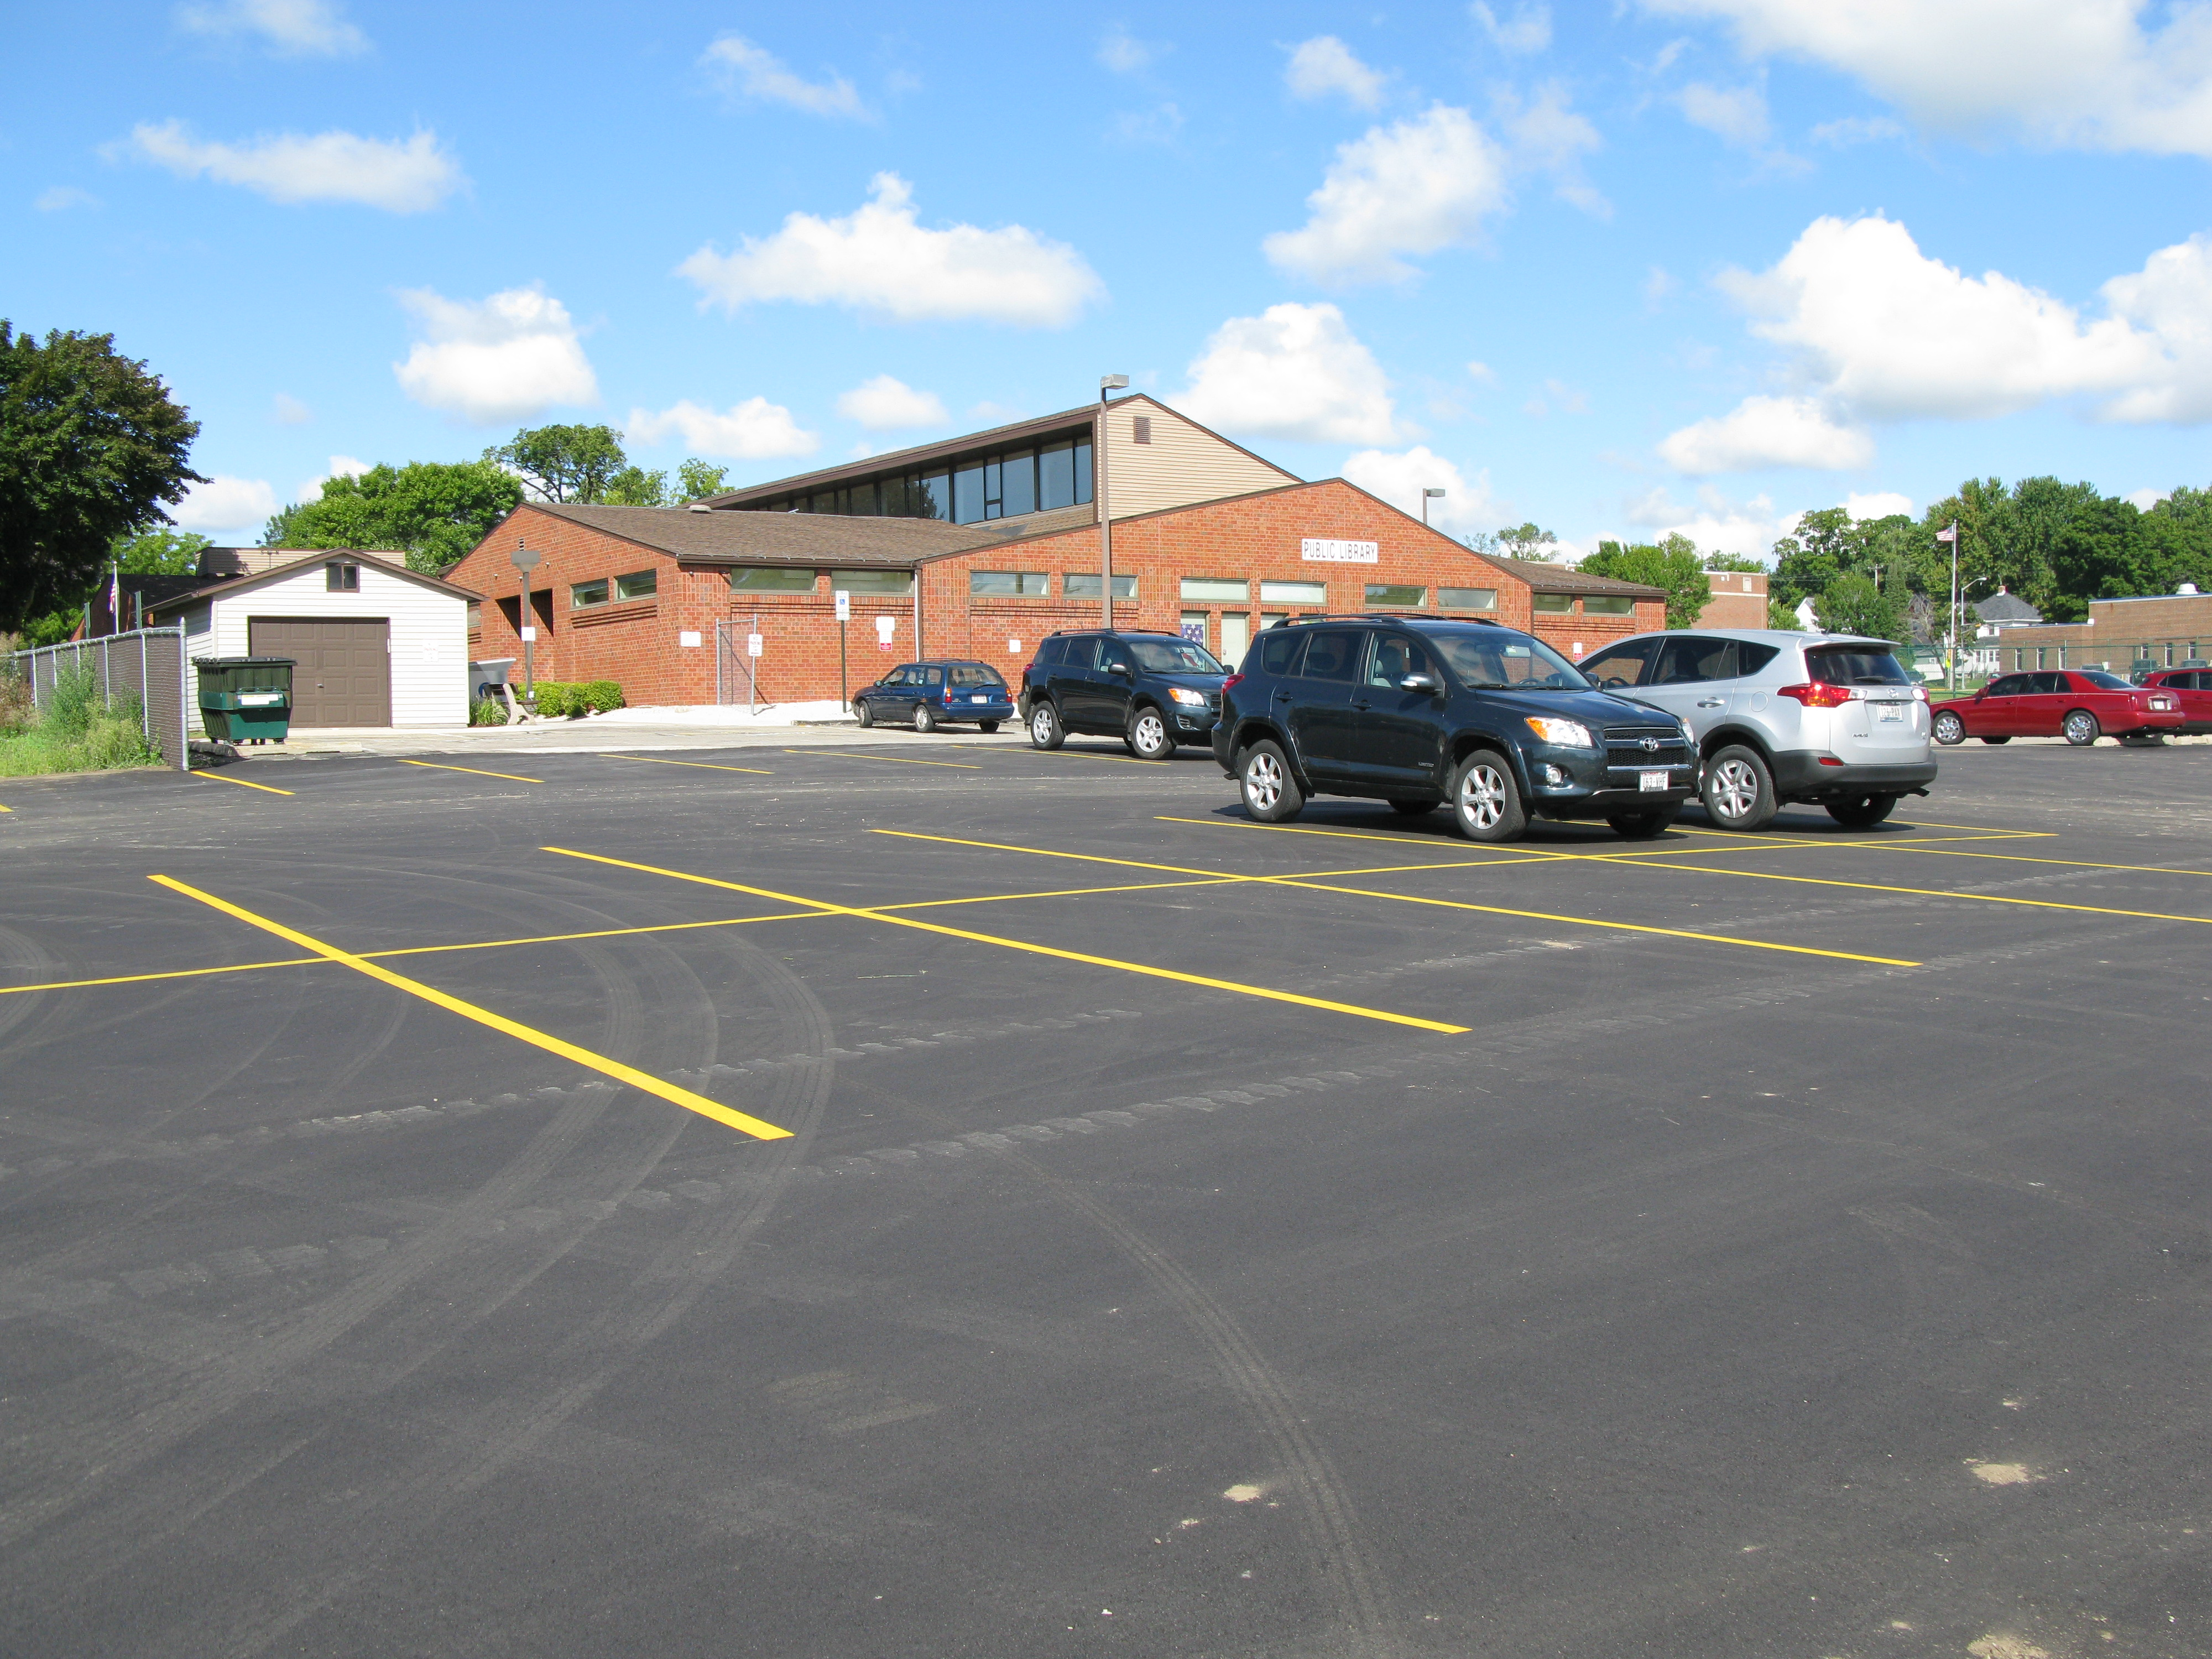 Library Parking Lot Expanded